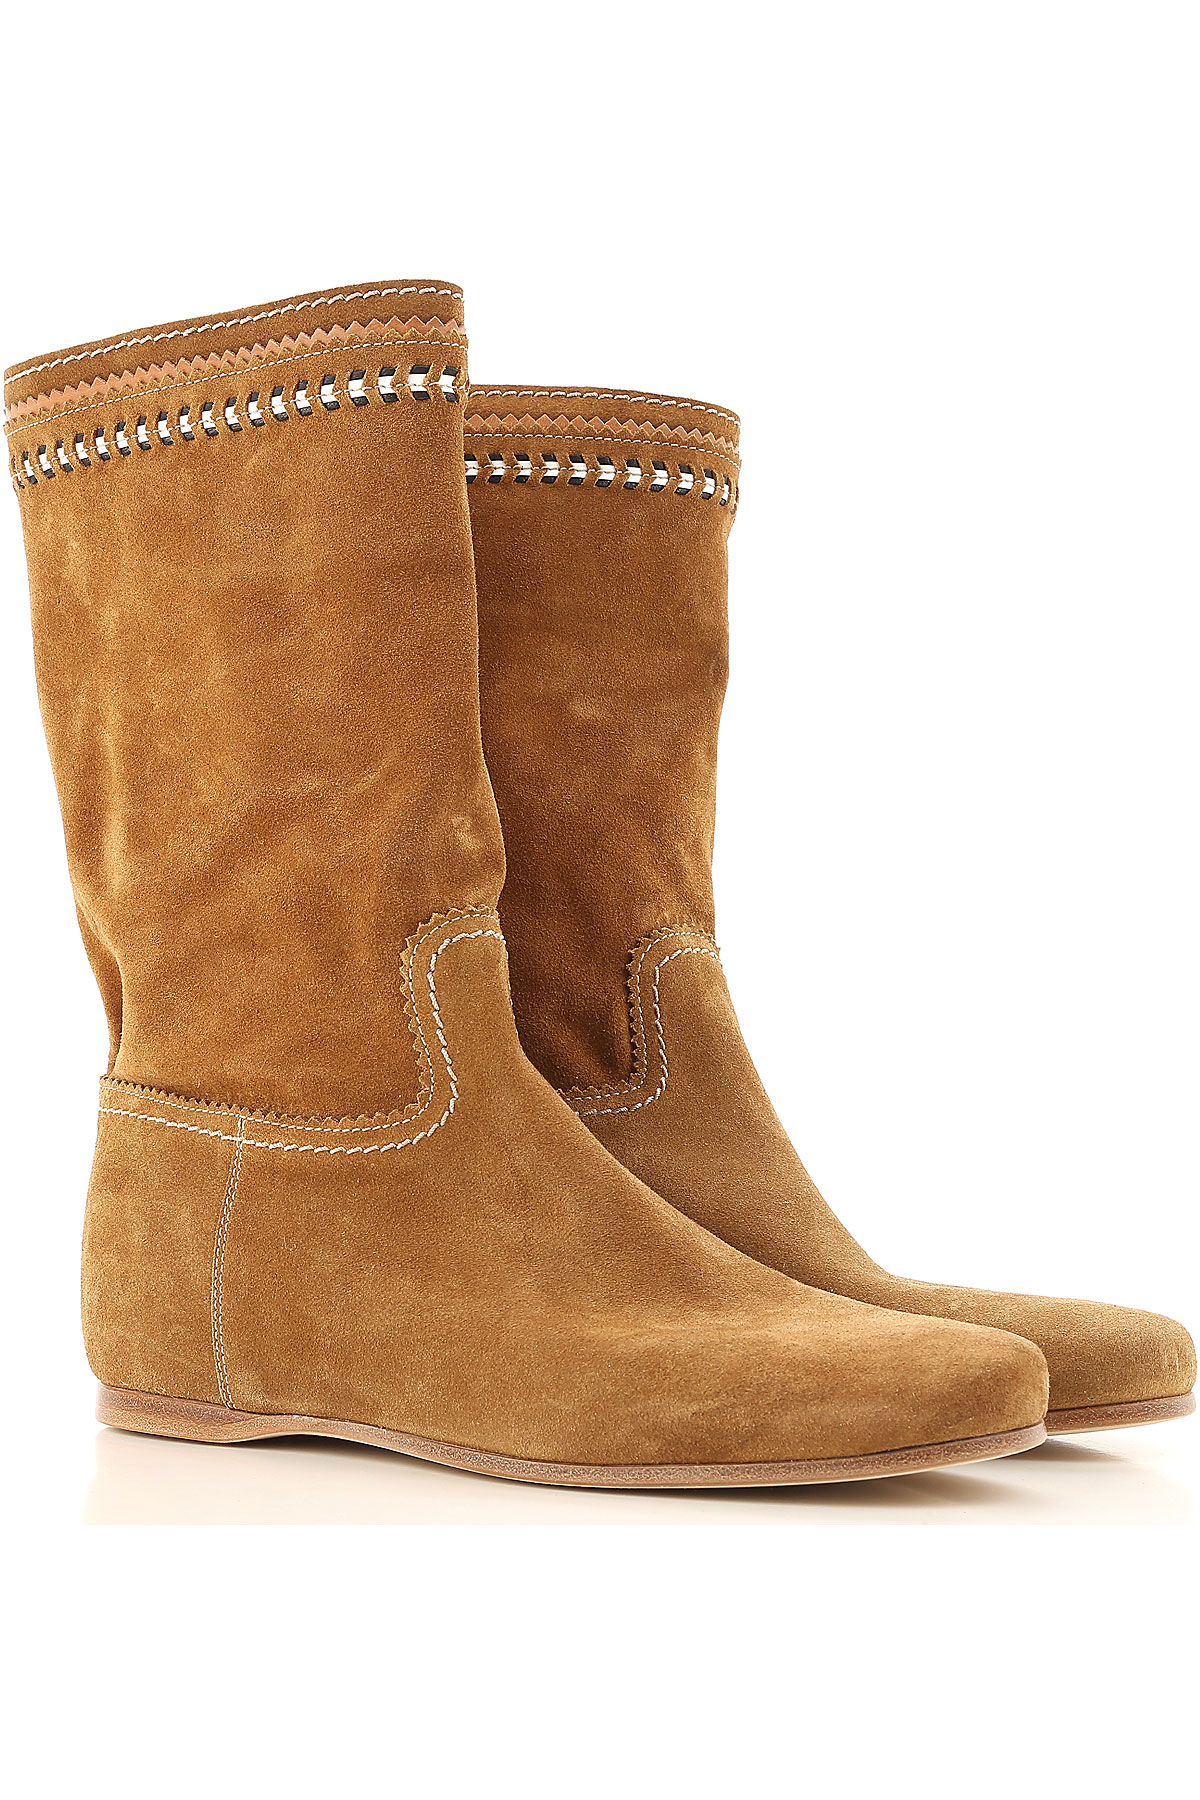 Image of Car Shoe Boots for Women, Booties On Sale in Outlet, Caramel, Suede leather, 2017, 8